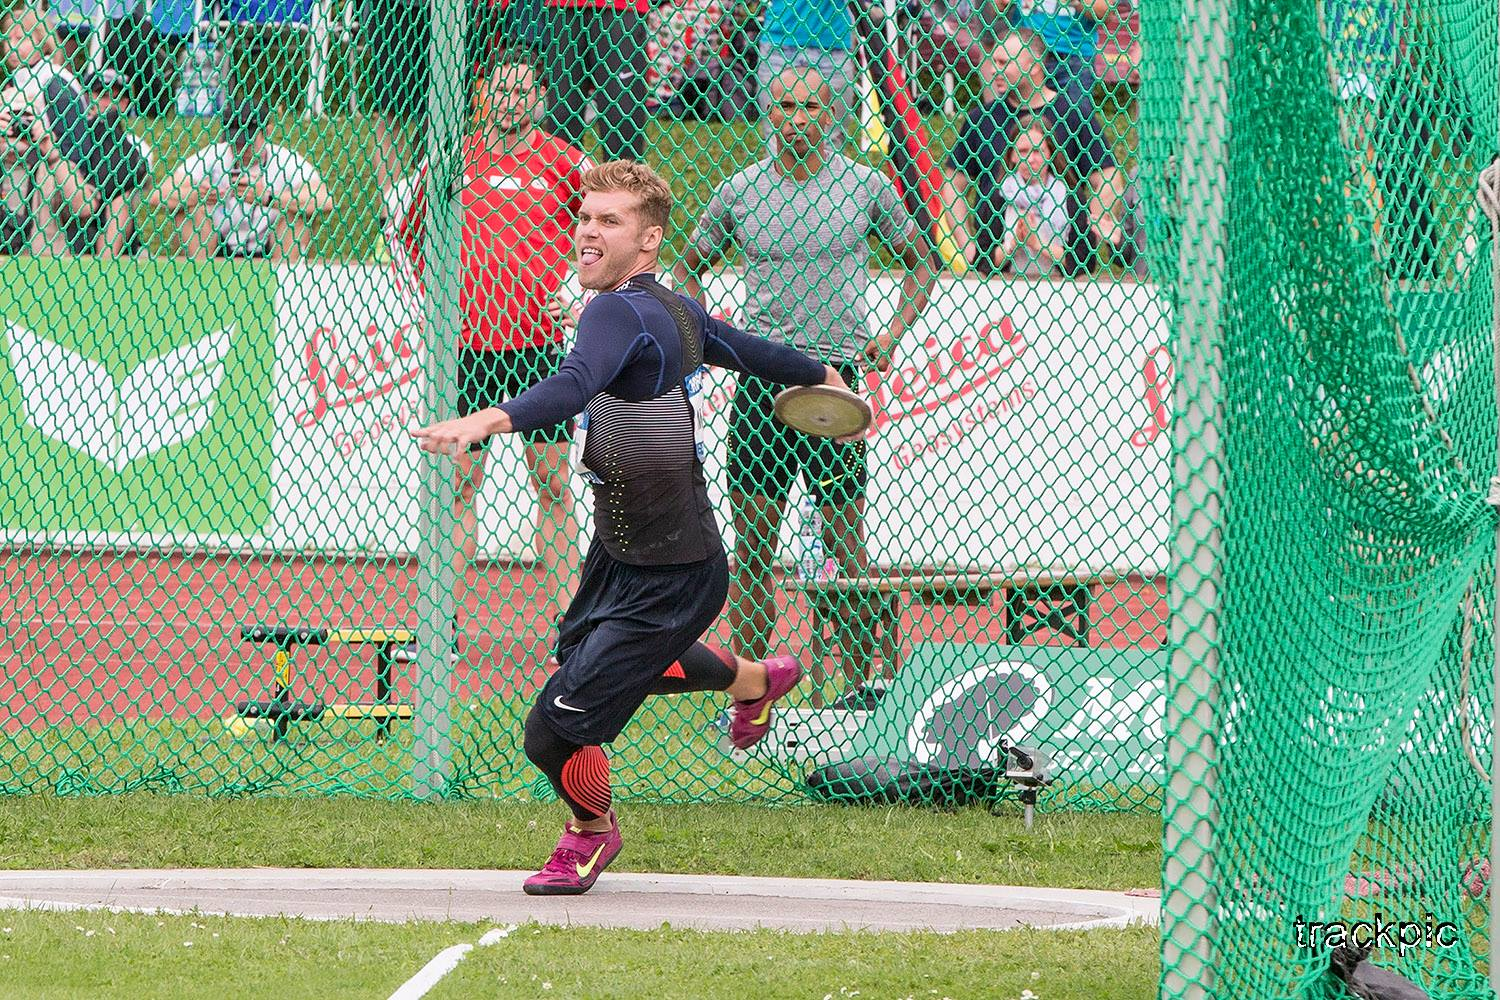 Kevin Mayer on the foreground, Kai Kazmirek and Damian Warner behind the cage. Photo by Olavi Kaljunen / trackpic.net